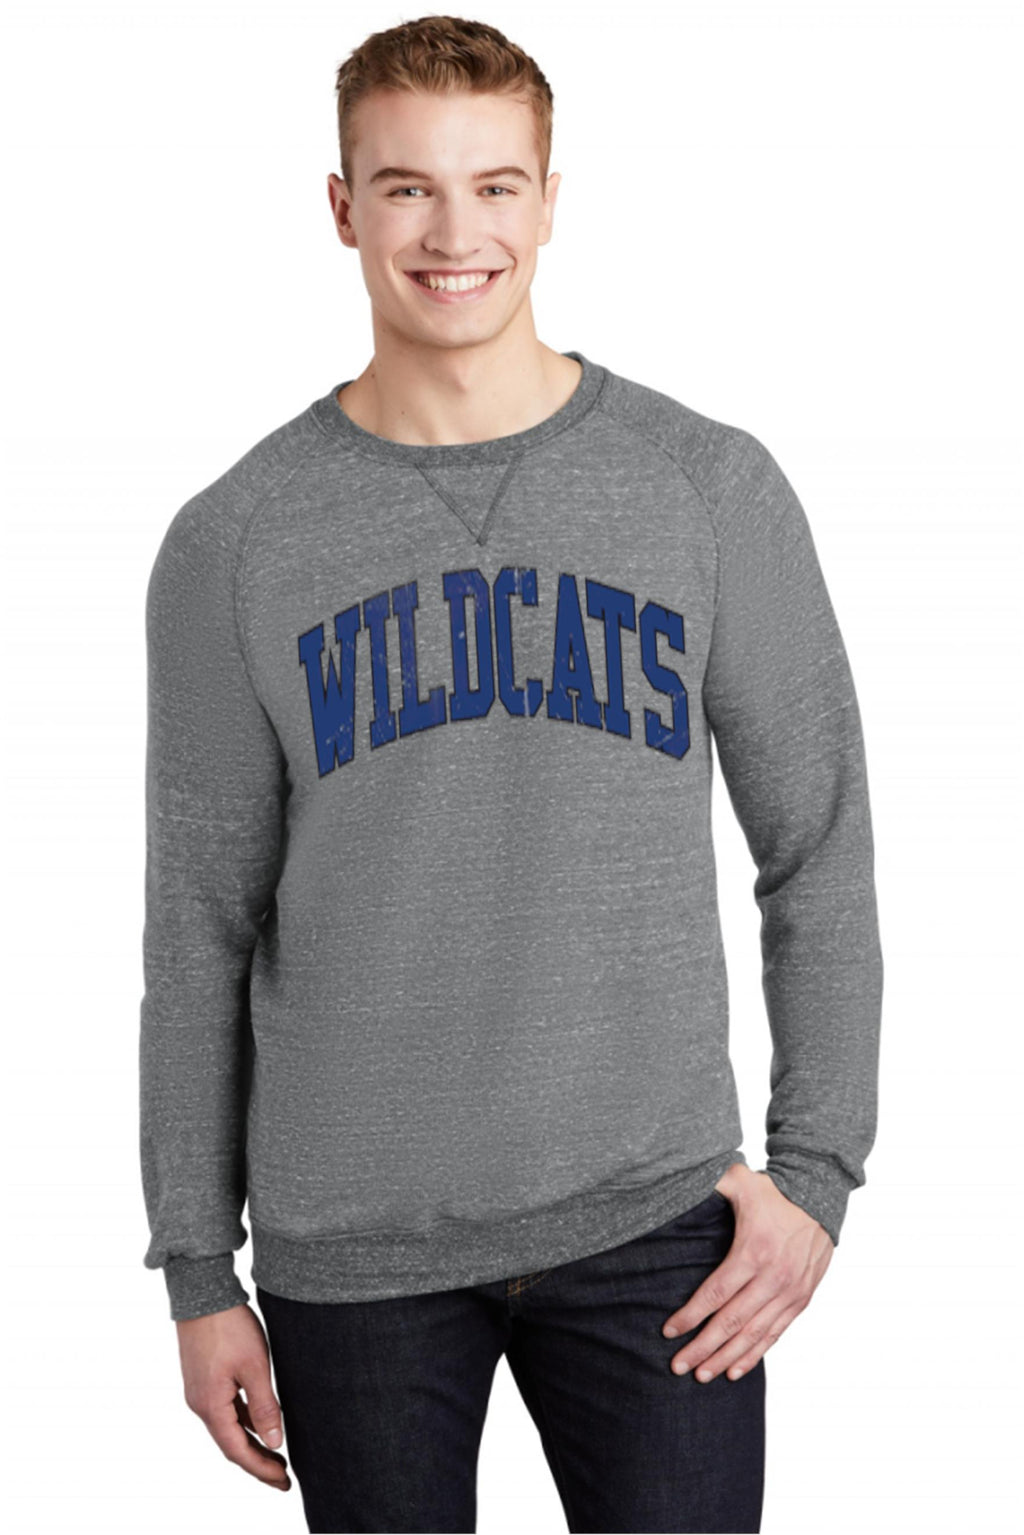 Wildcat Crew Neck Sweatshirt - BLUE